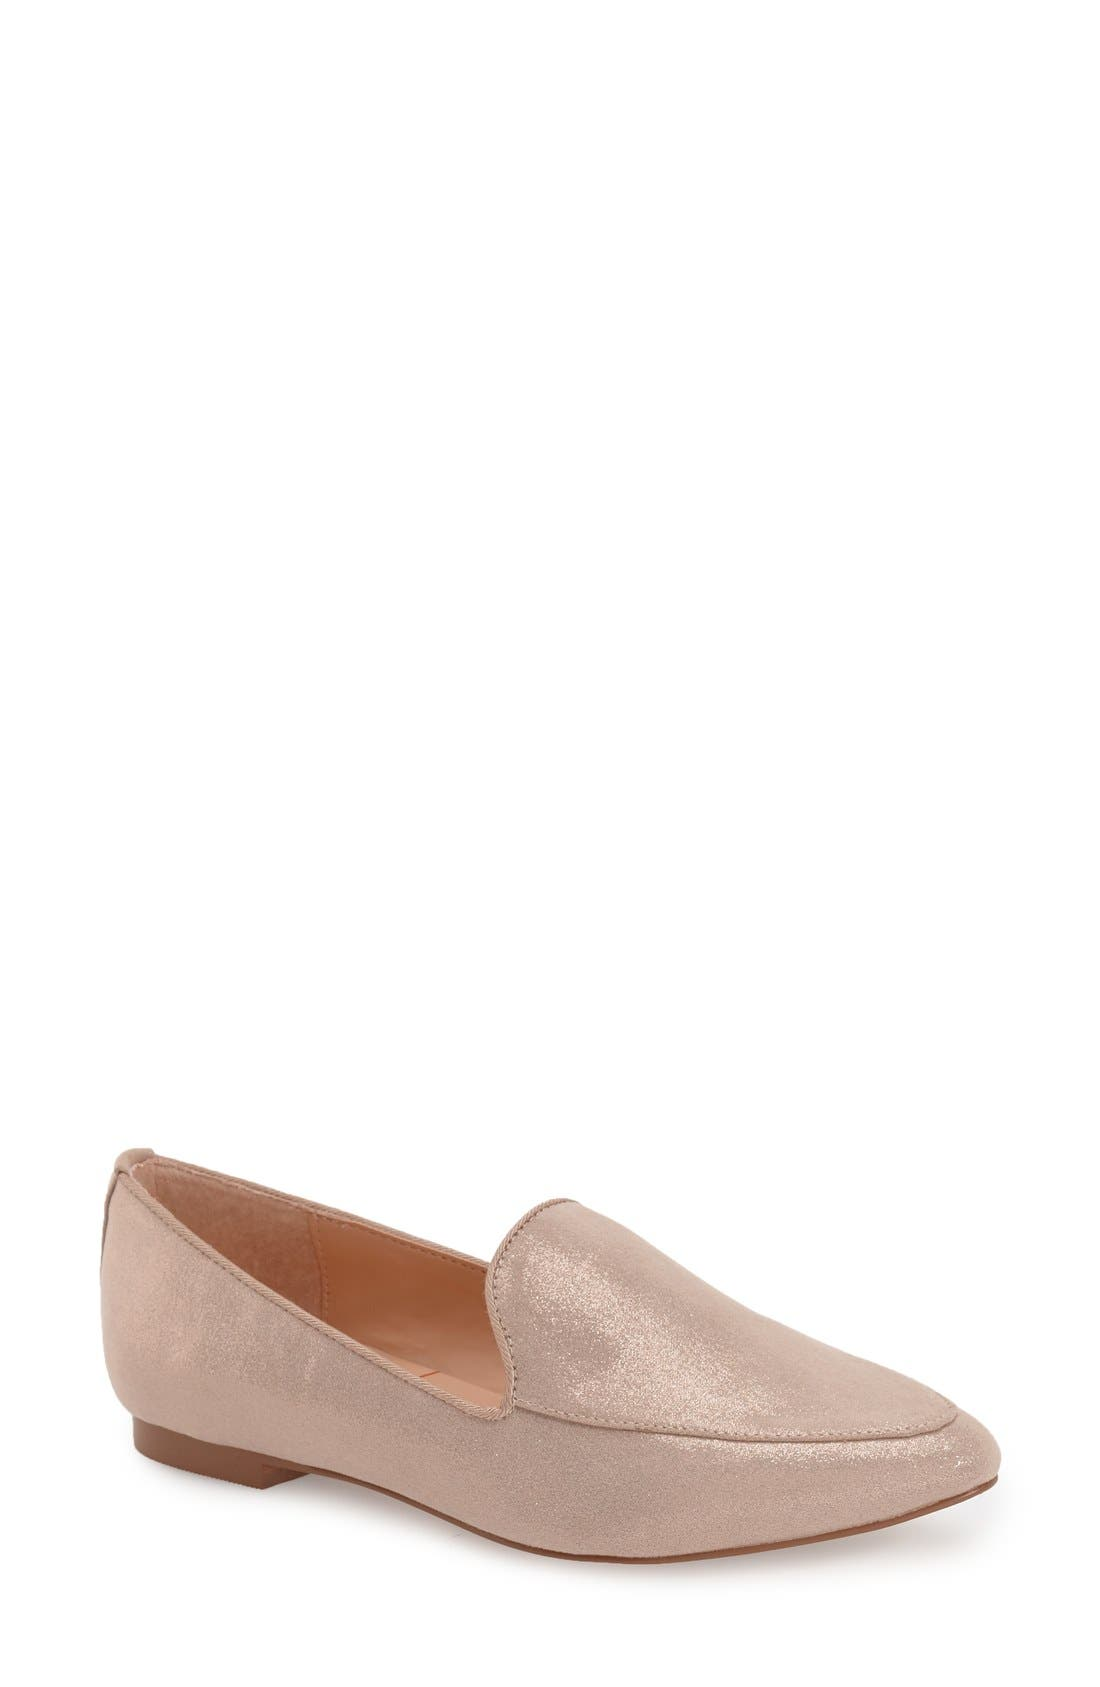 'Sean' Pointy Toe Loafer,                         Main,                         color, 285